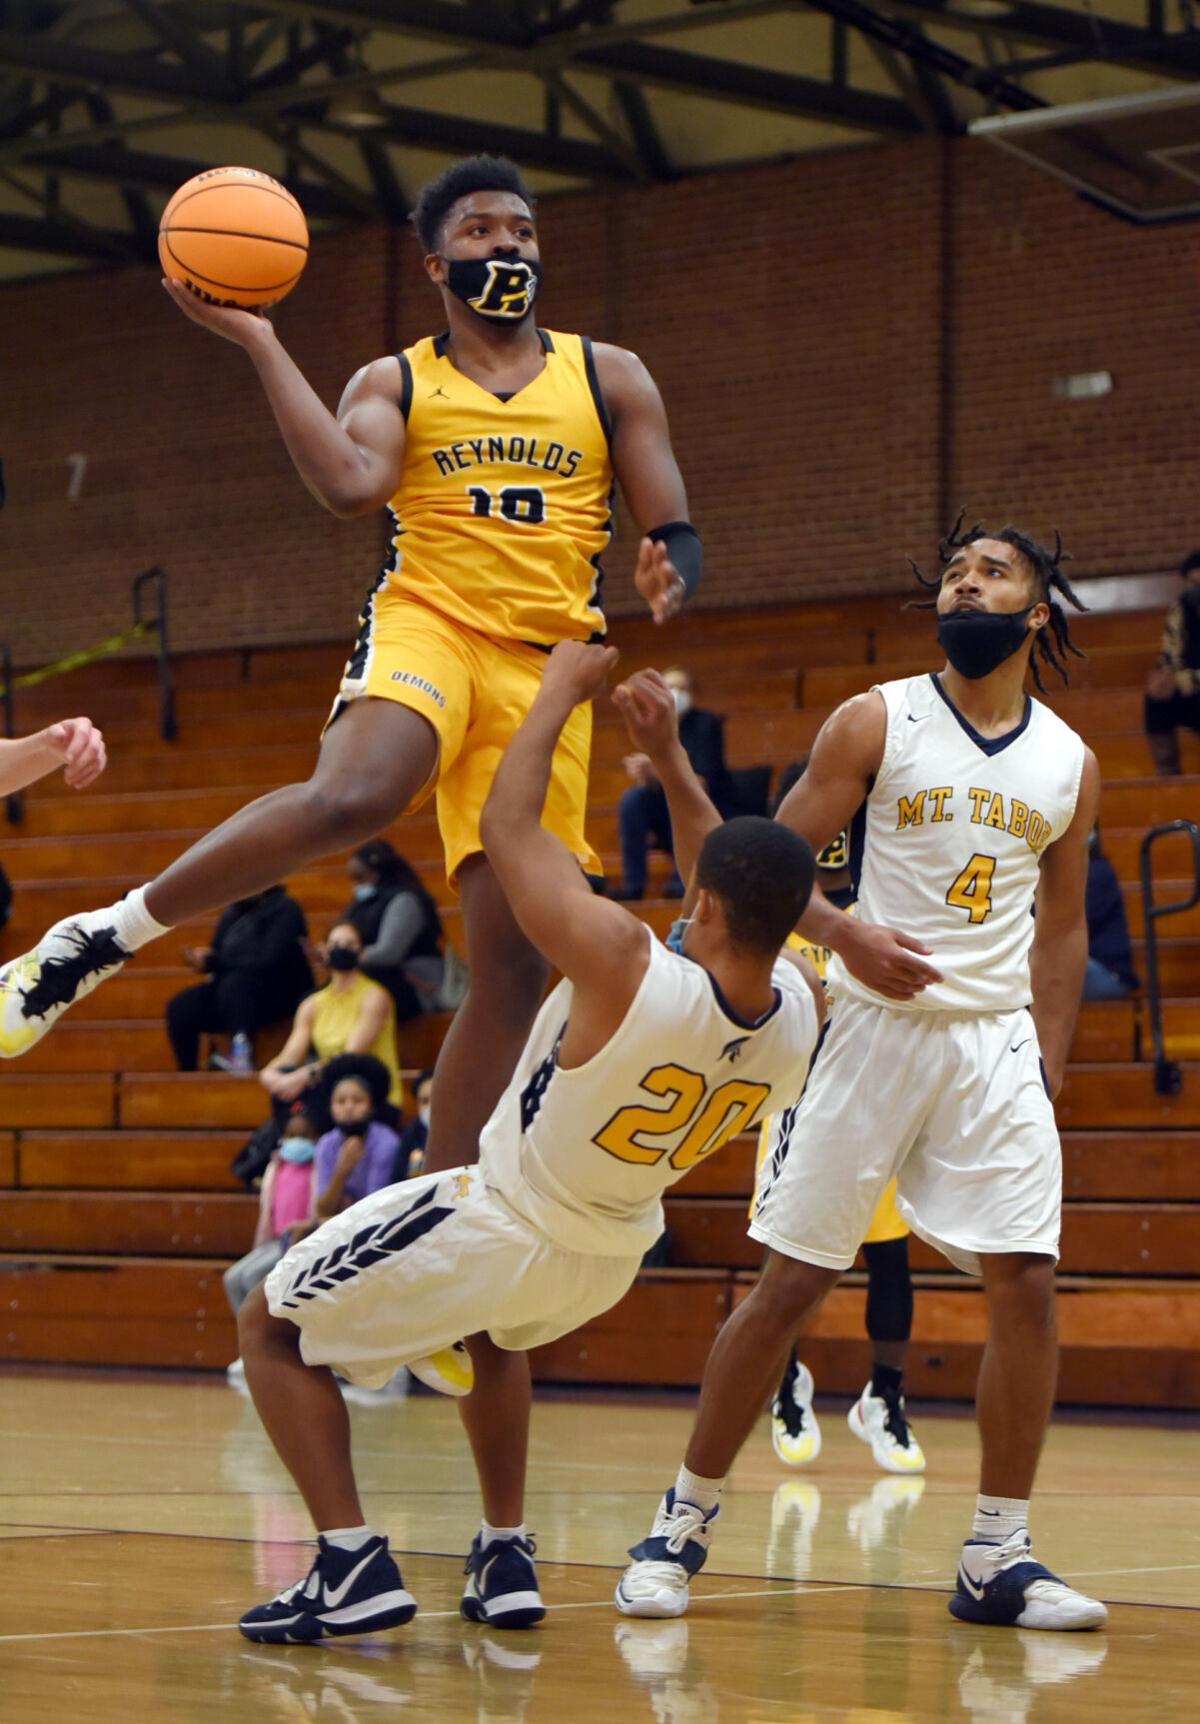 Reynolds Mount Tabor boys basketball